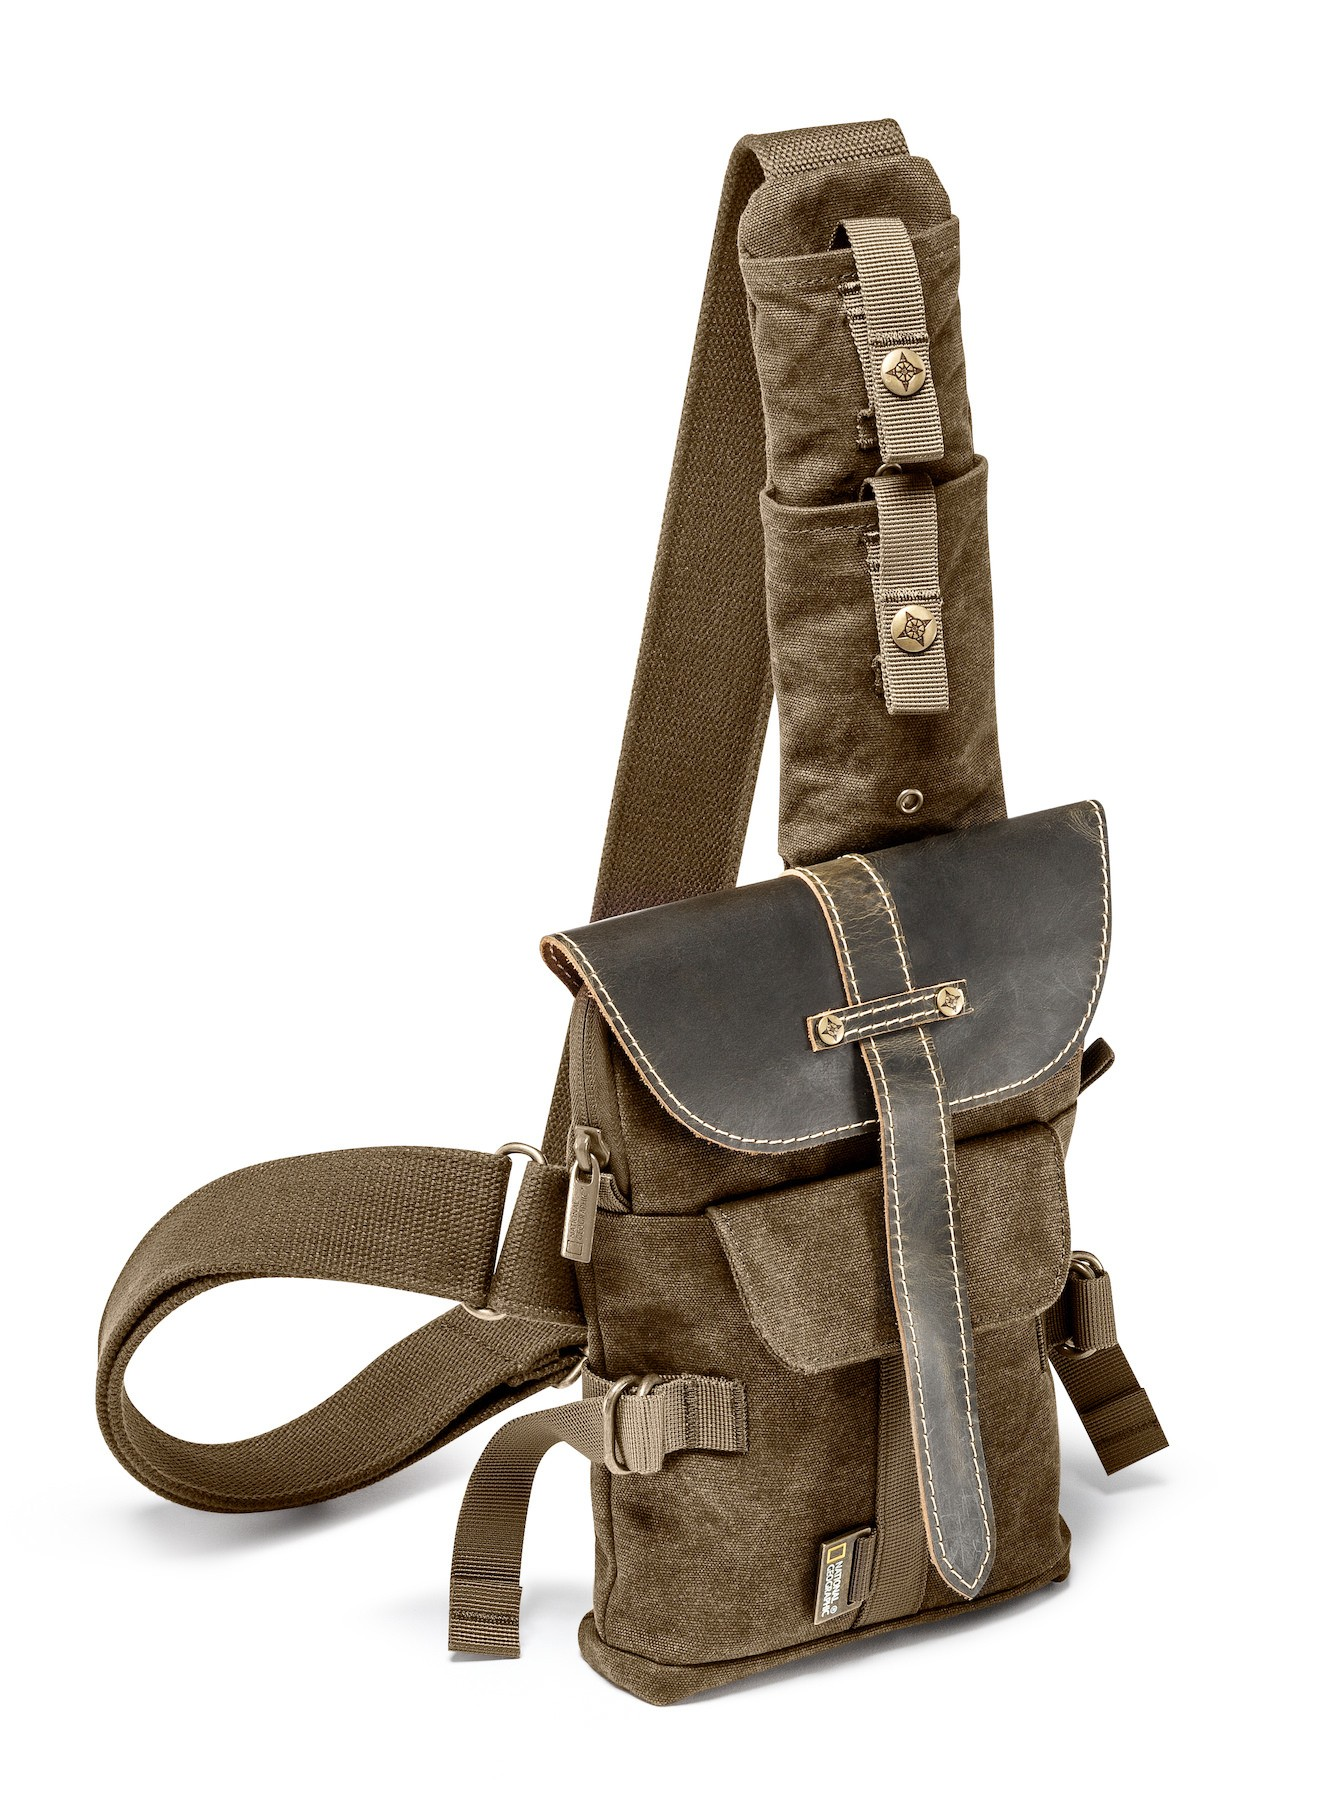 NG Africa Camera Sling Bag for CSC -